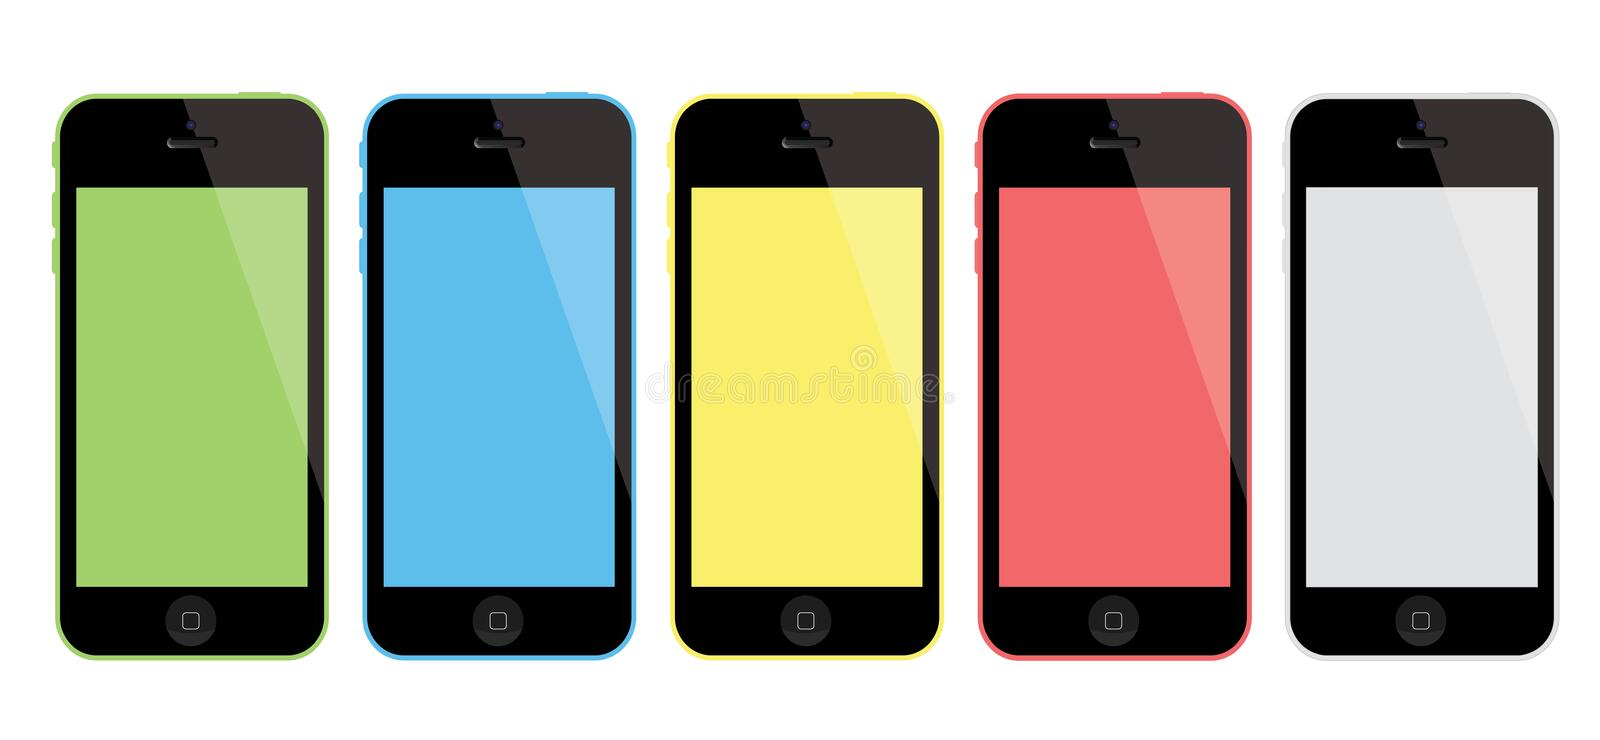 Nuevo iPhone 5C de Apple ilustración del vector